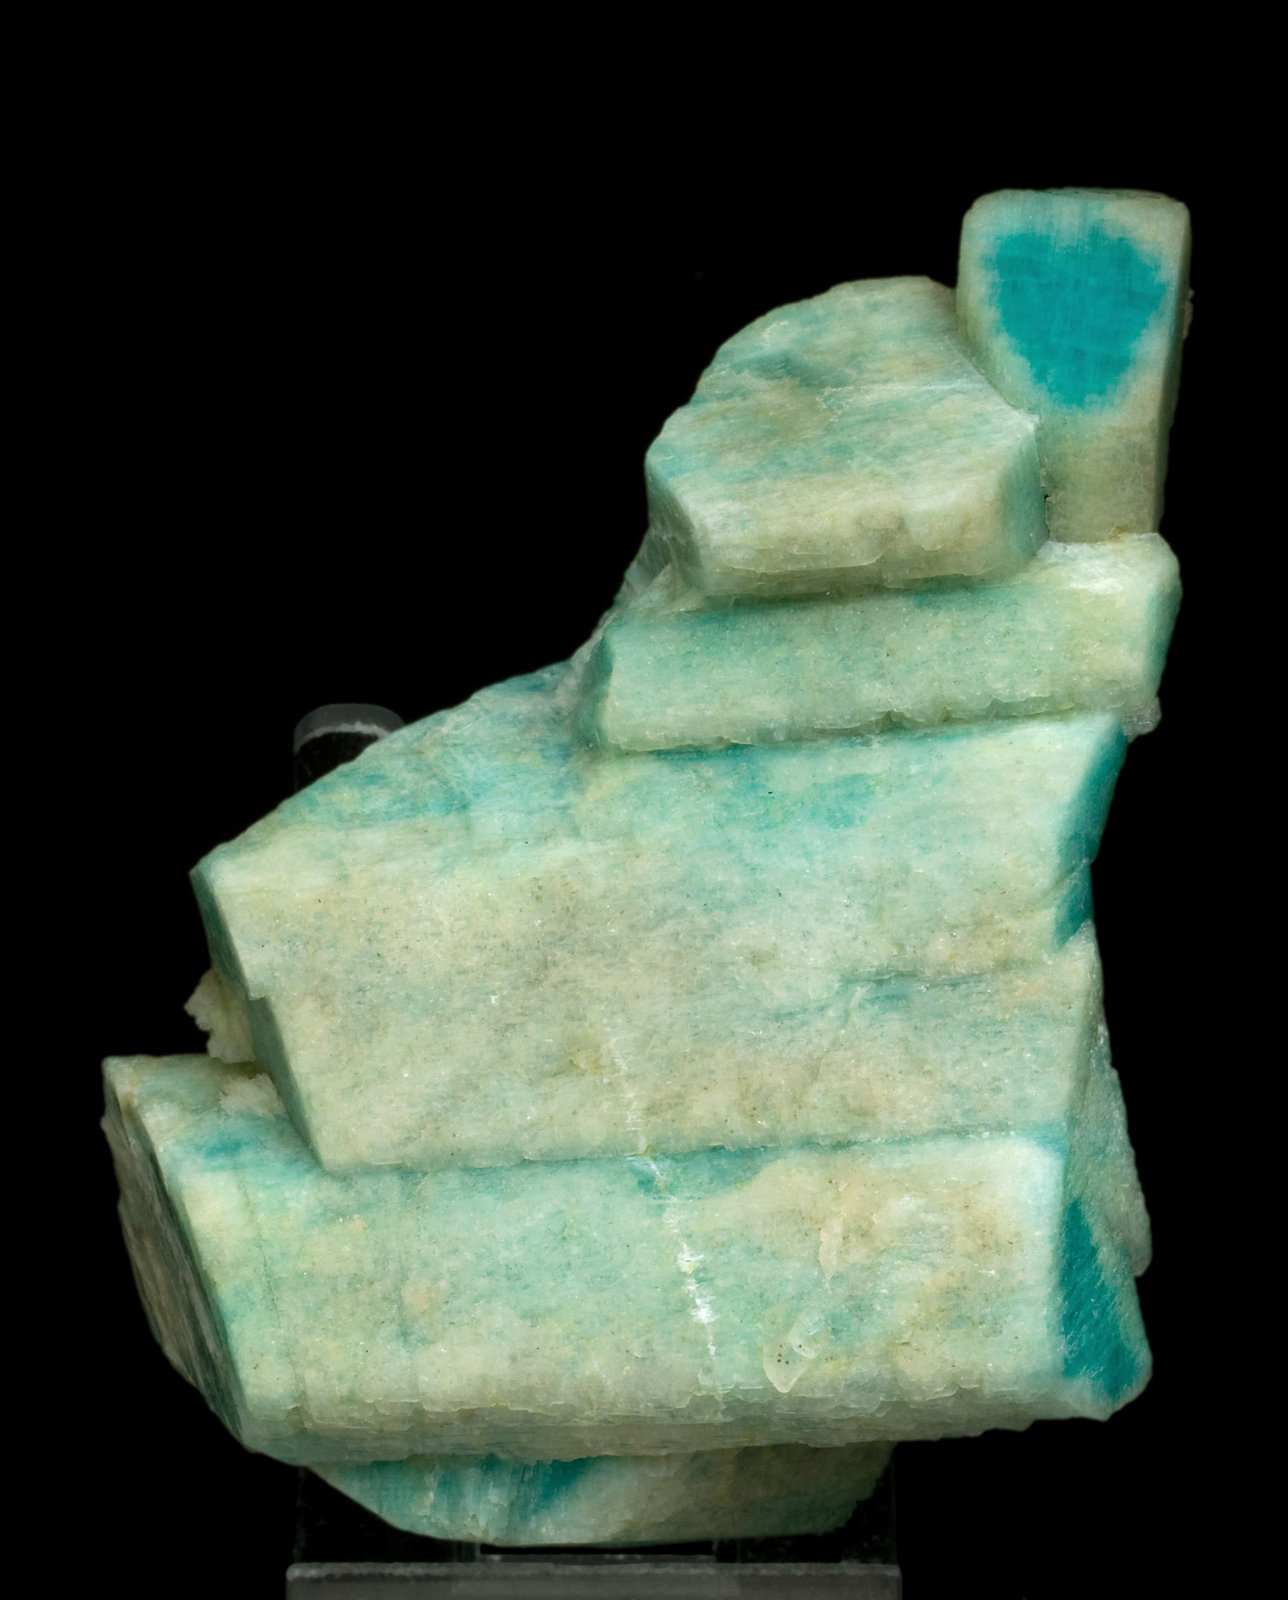 specimens/s_imagesW0/Amazonite-JA46W0.jpg